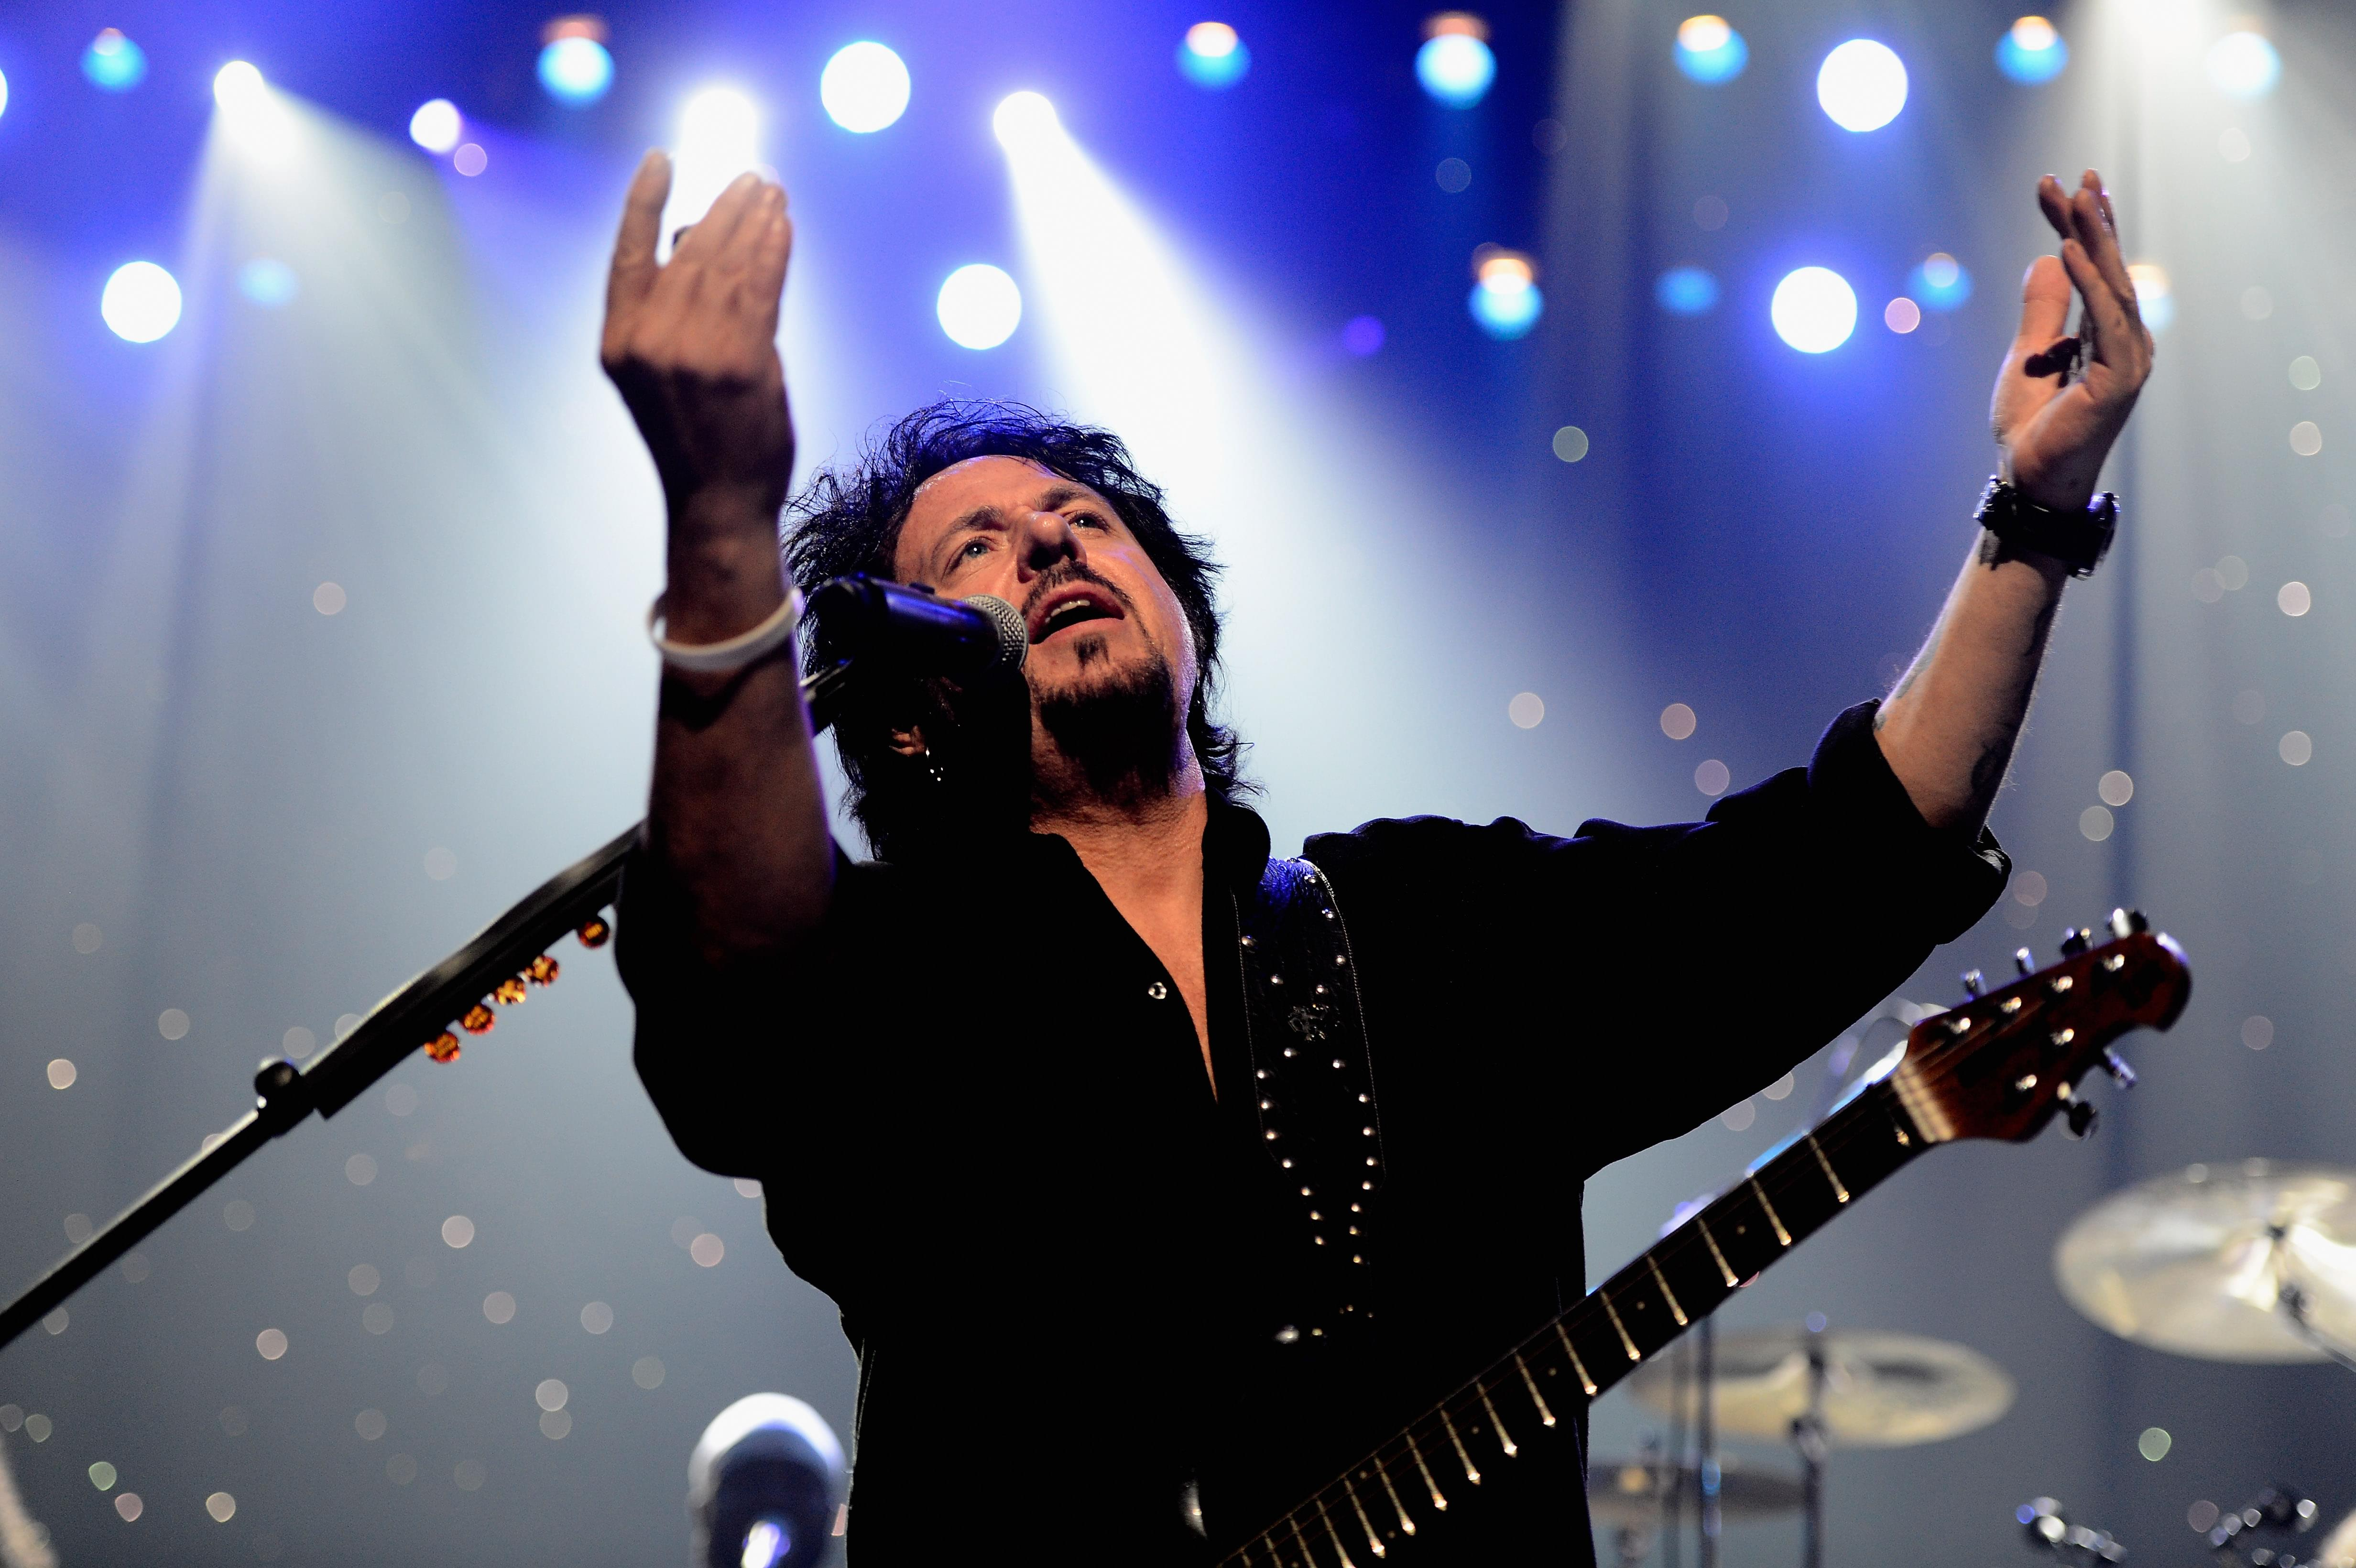 Steve Lukather's neighbors blasted 10 leaf blowers at 7AM… So he got them back!